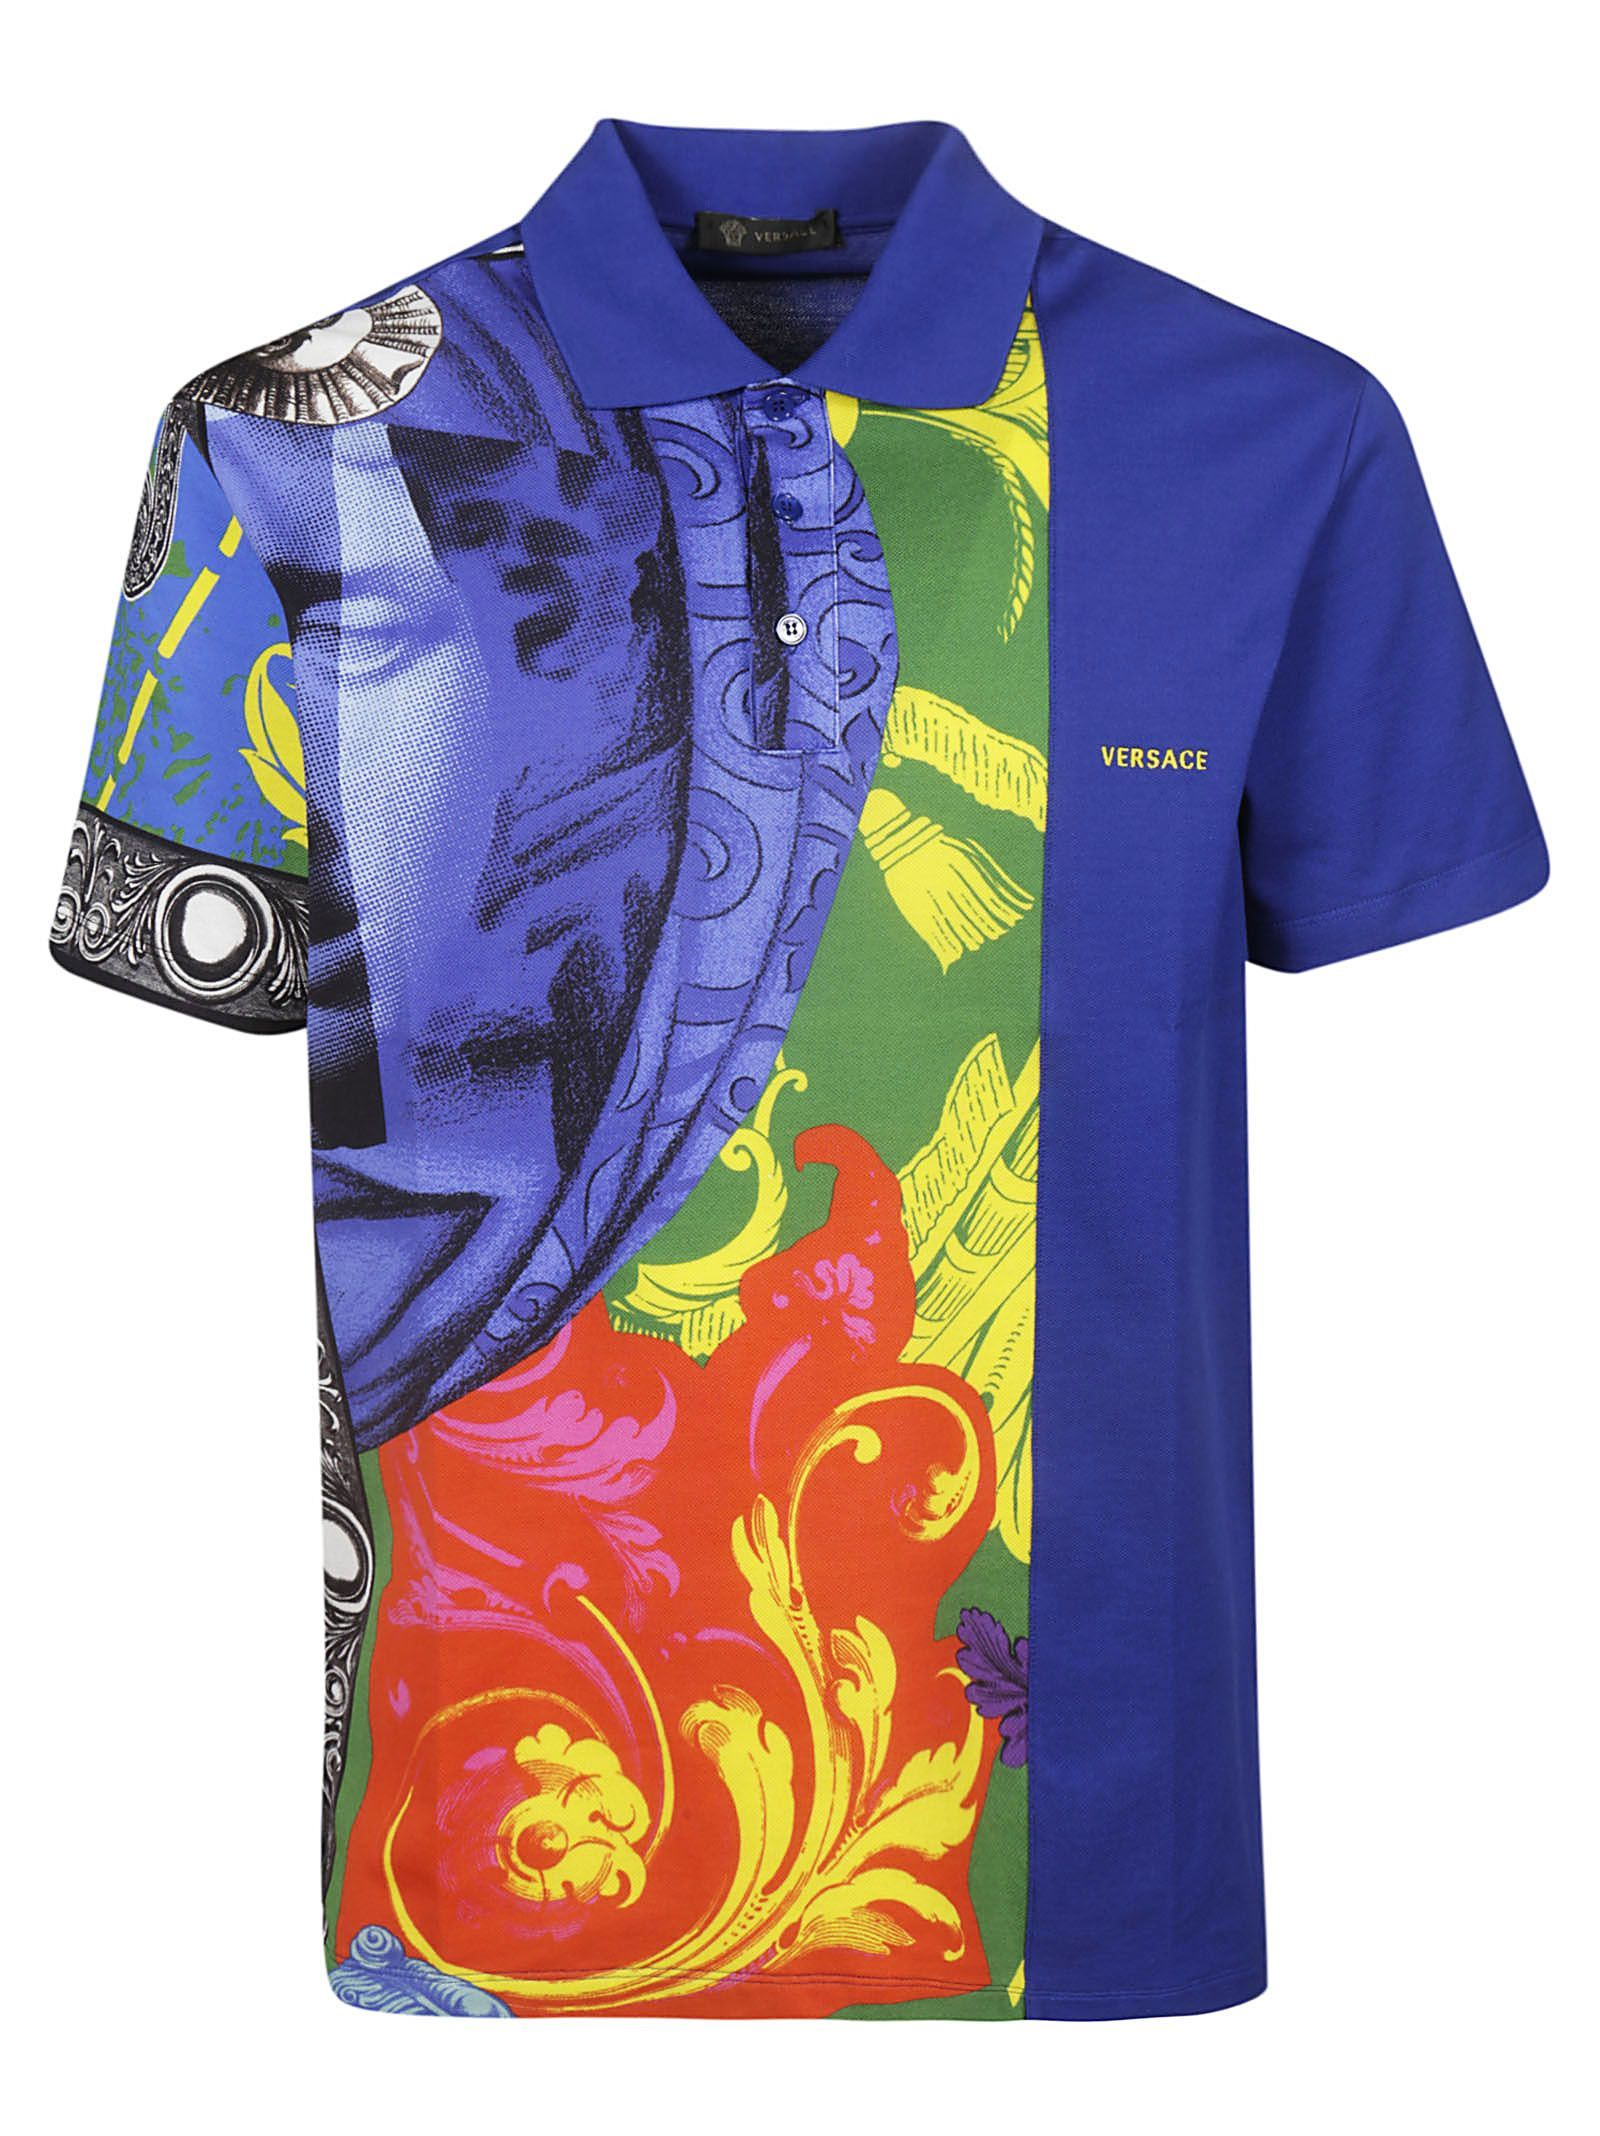 b12109c3 VERSACE MAGNA GRECIA POLO SHIRT. #versace #cloth | Versace in 2019 ...